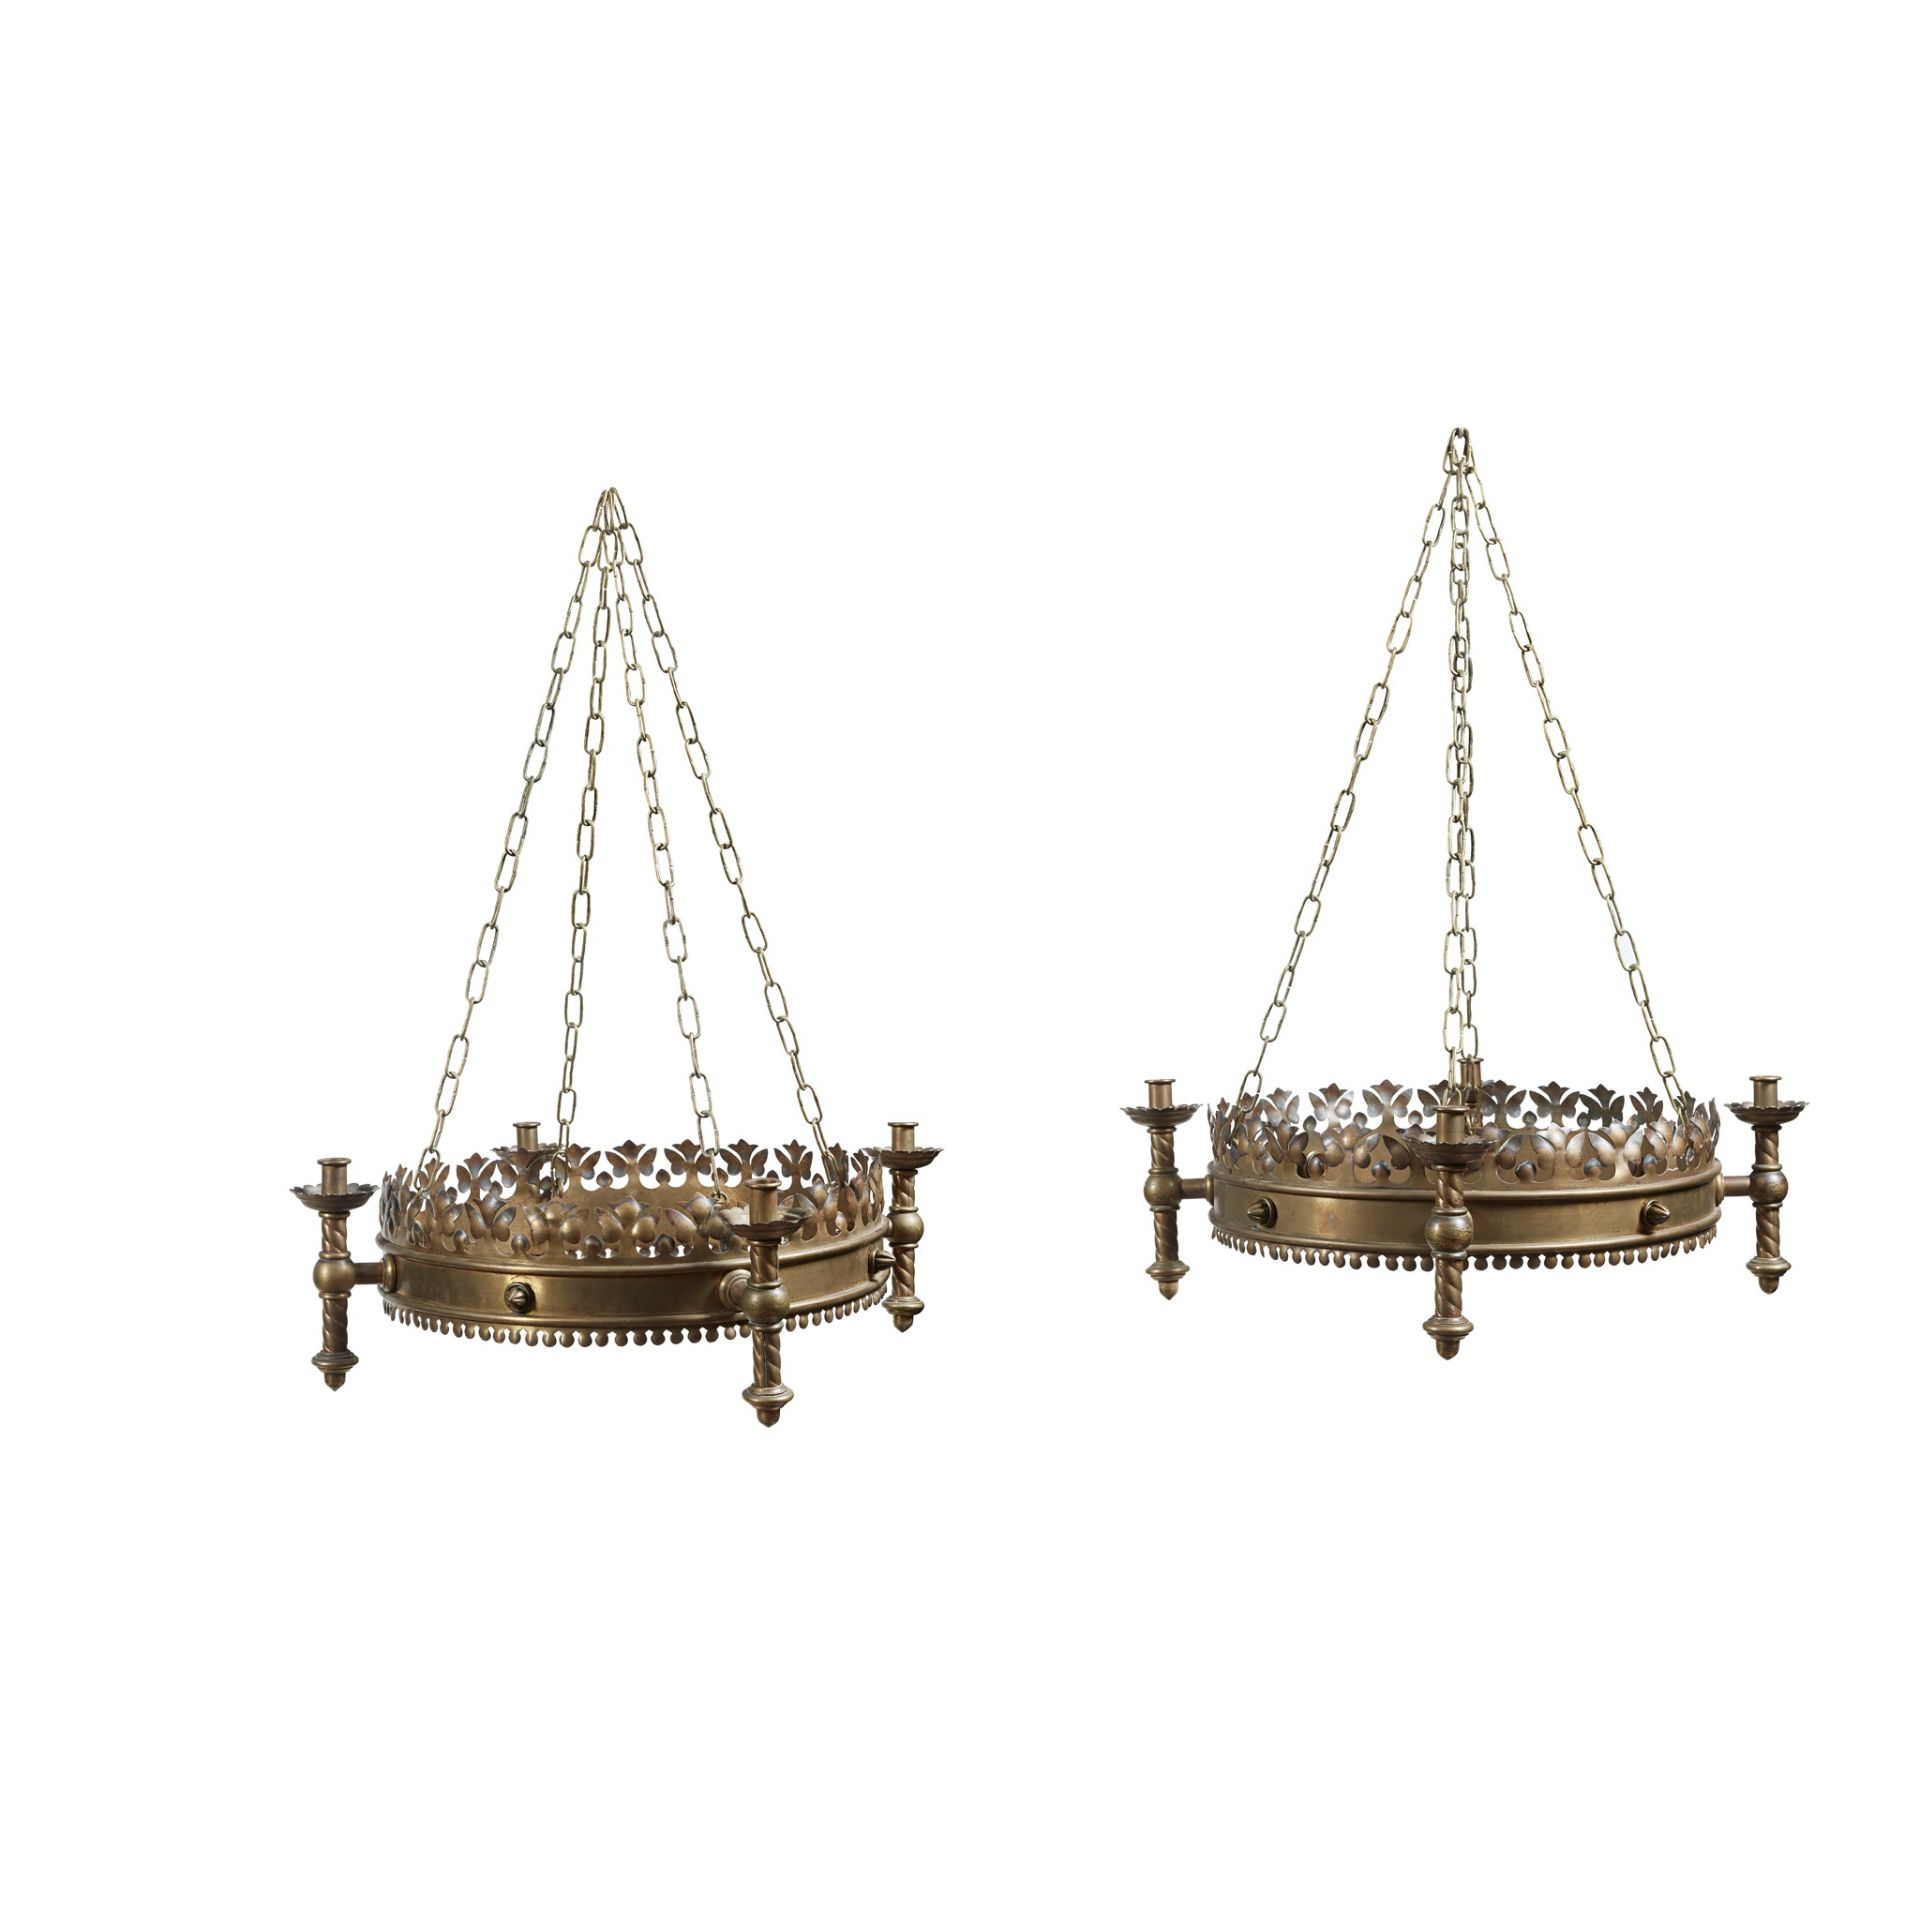 ENGLISH SCHOOL, MANNER OF A.W.N. PUGIN FOR JOHN HARDMAN & CO. PAIR OF GOTHIC REVIVAL CHANDELIERS,